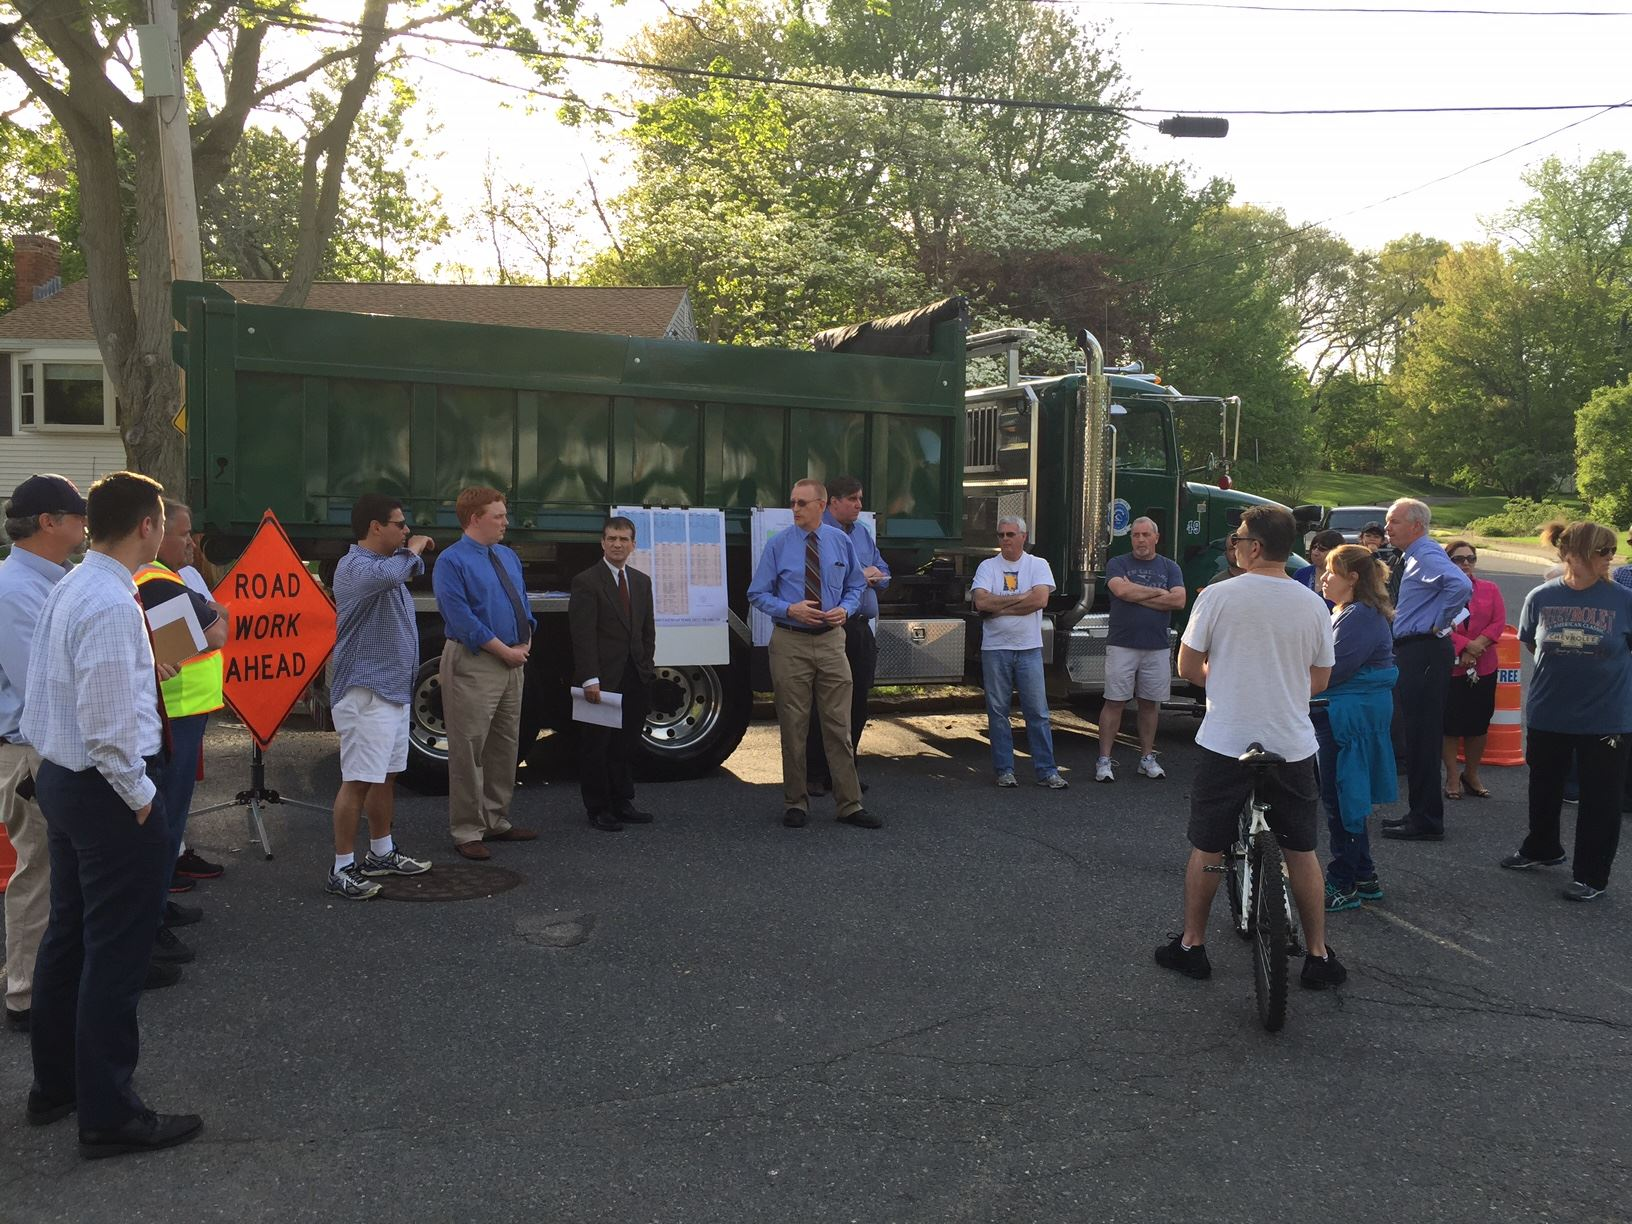 Braintree residents join Mayor Sullivan for the announcement of the 4th 100 roads program